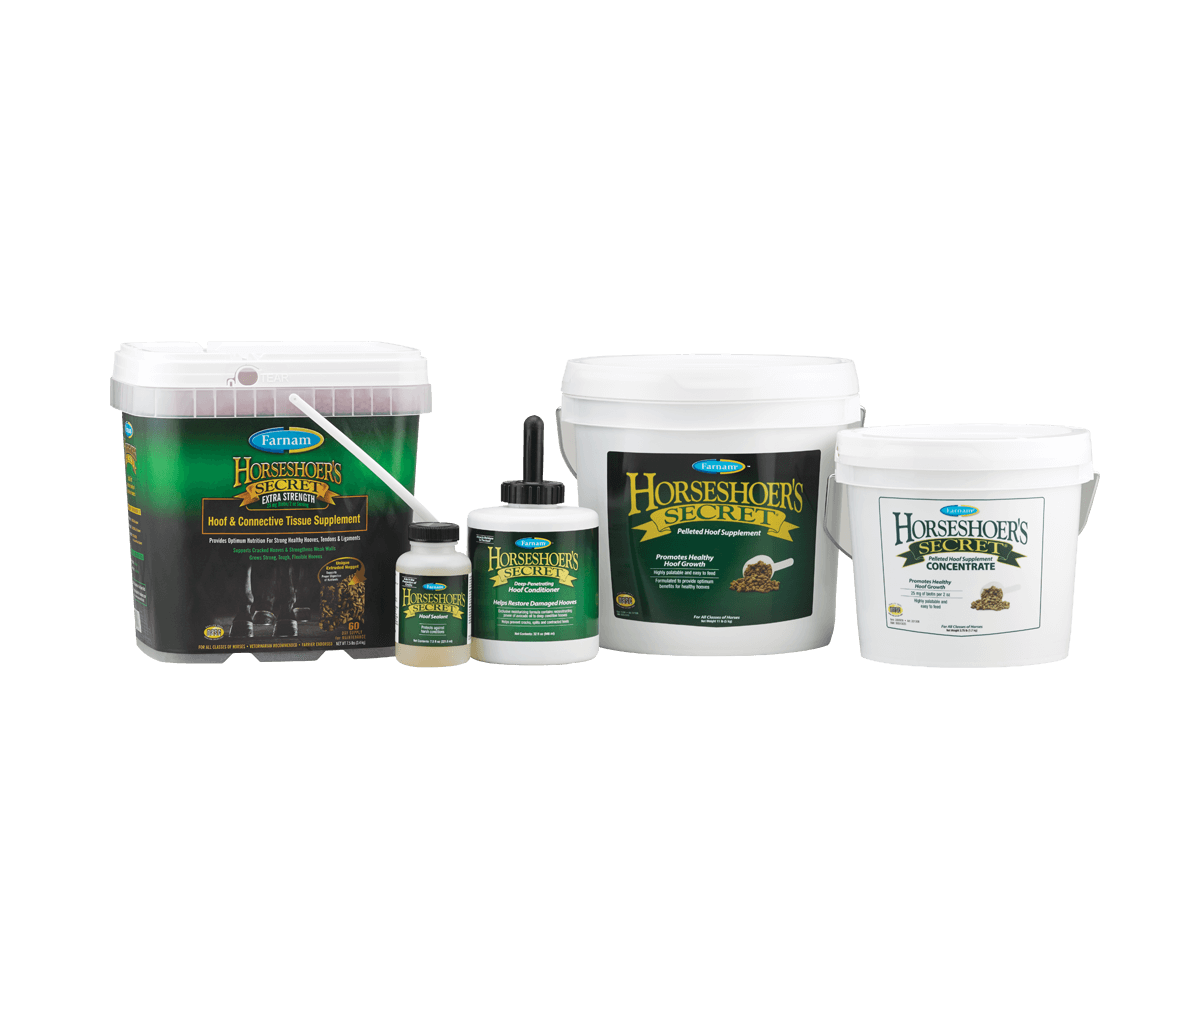 Horseshoer's Secret<sup>®</sup> - A Complete Line of Hoof and Leg Care Products